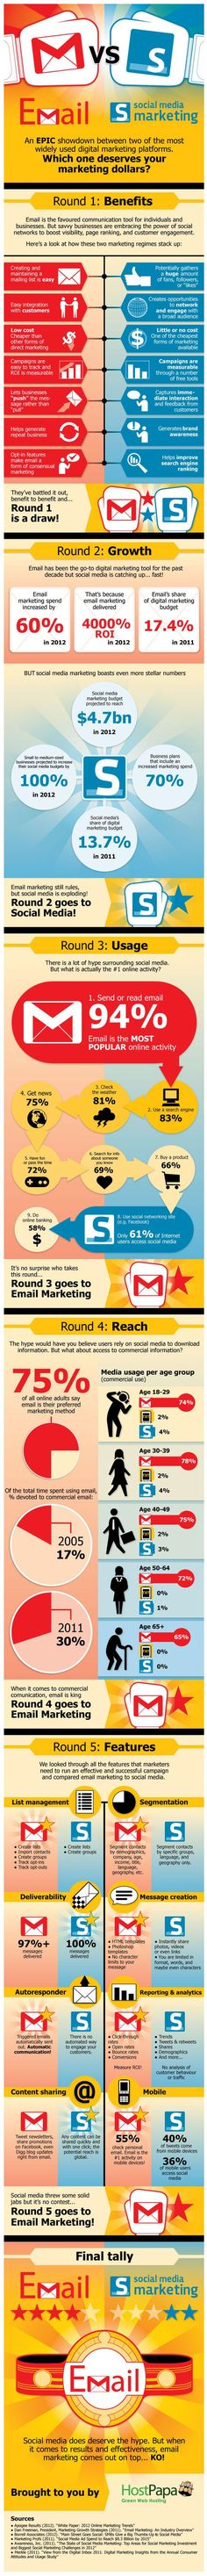 Check out this difference between Email Marketing and Social Media Marketing to select the best choice for your business or service. To learn more about Email and Social Media Marketing visit the website. . #Emails #Lists #SMM #SocialMedia #DigitalMarketing #EmailMarketing #Marketing #StaenzAcademy